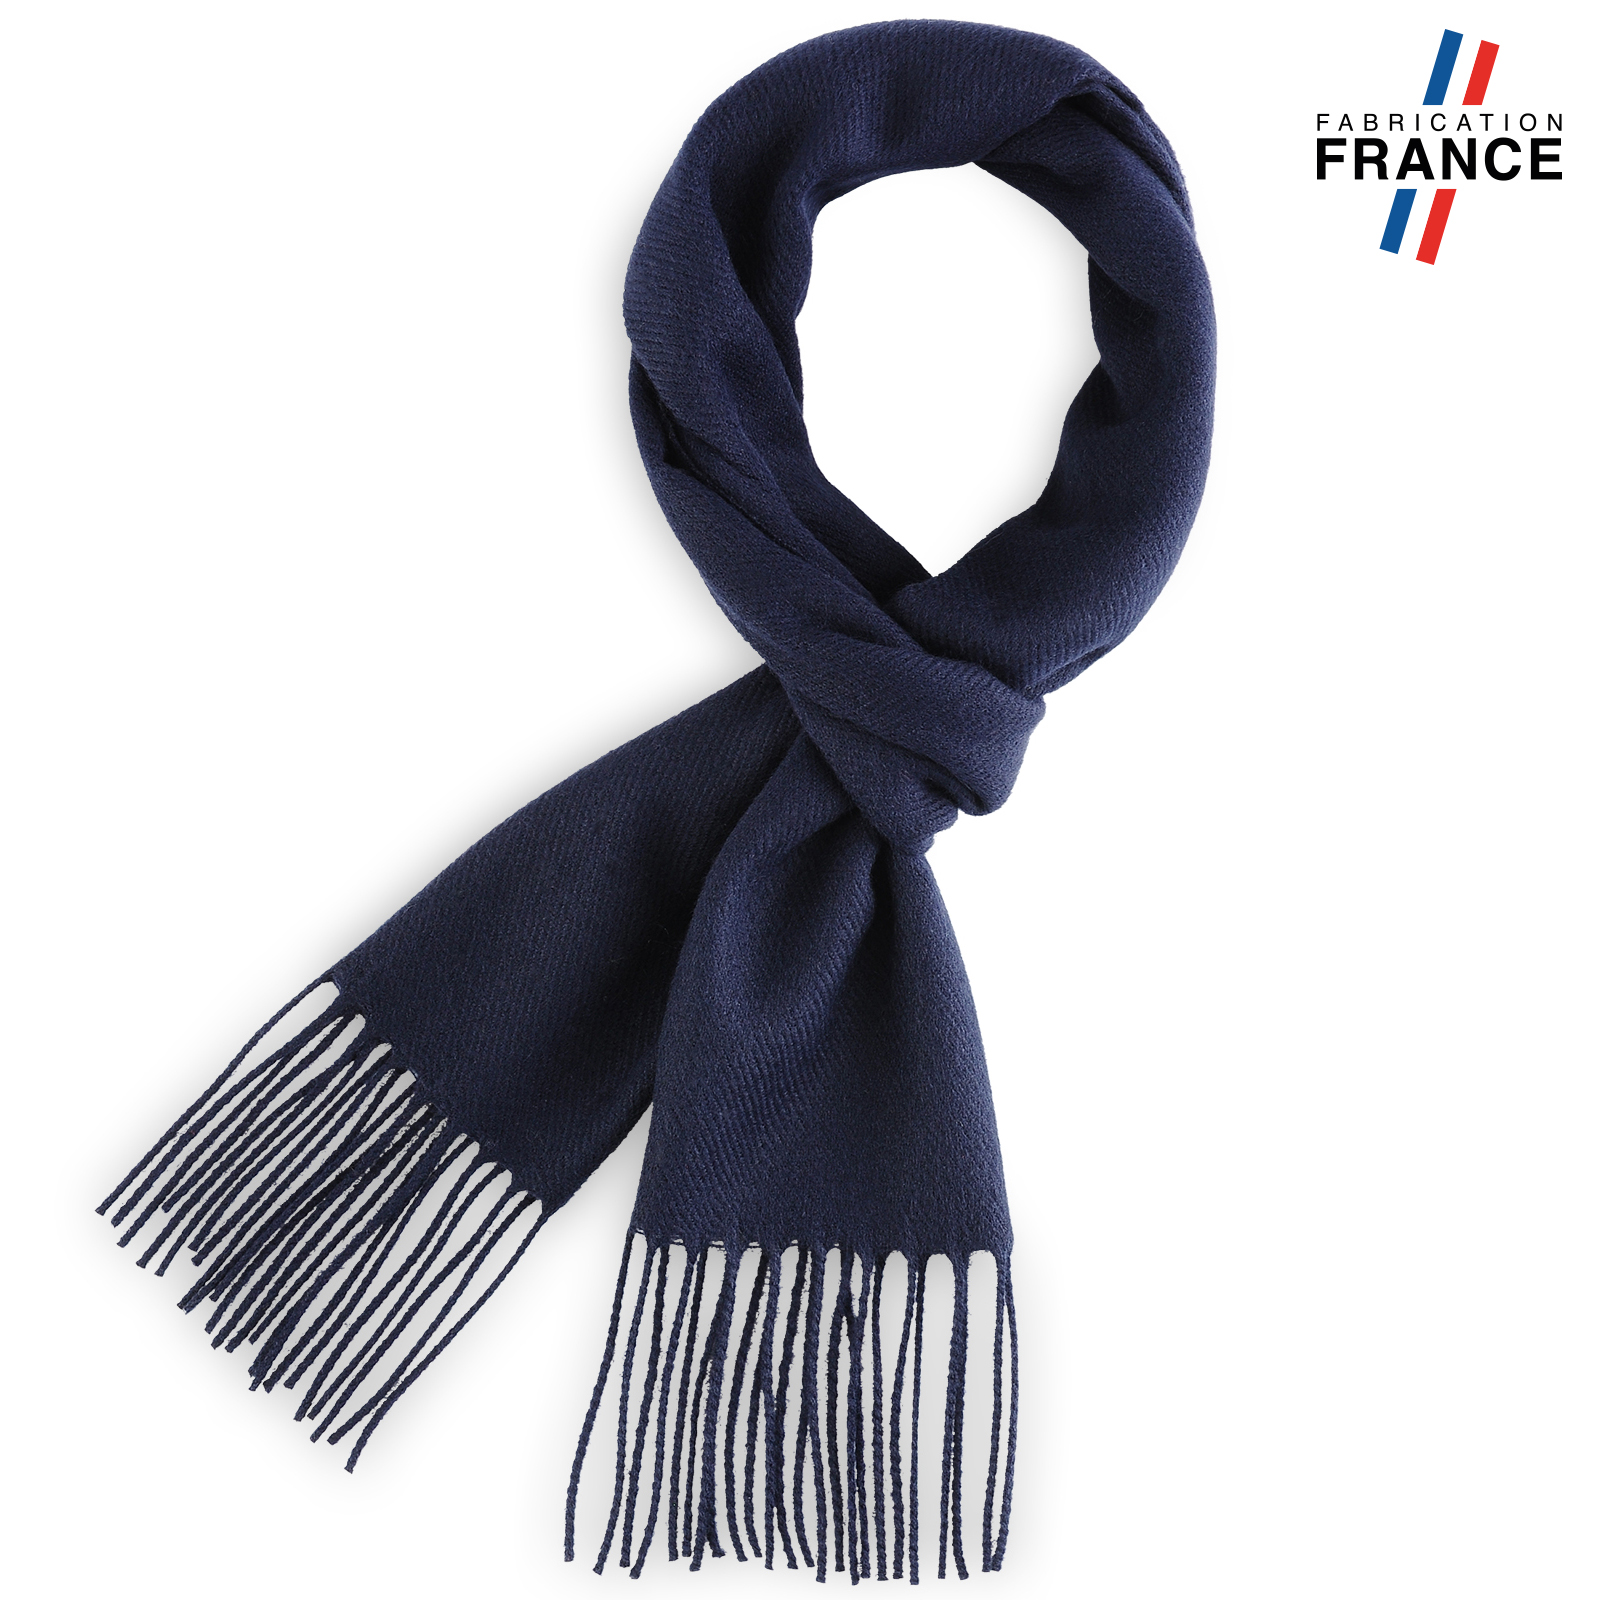 AT-03464-F16-echarpe-bleue-marine-franges-fabrication-france